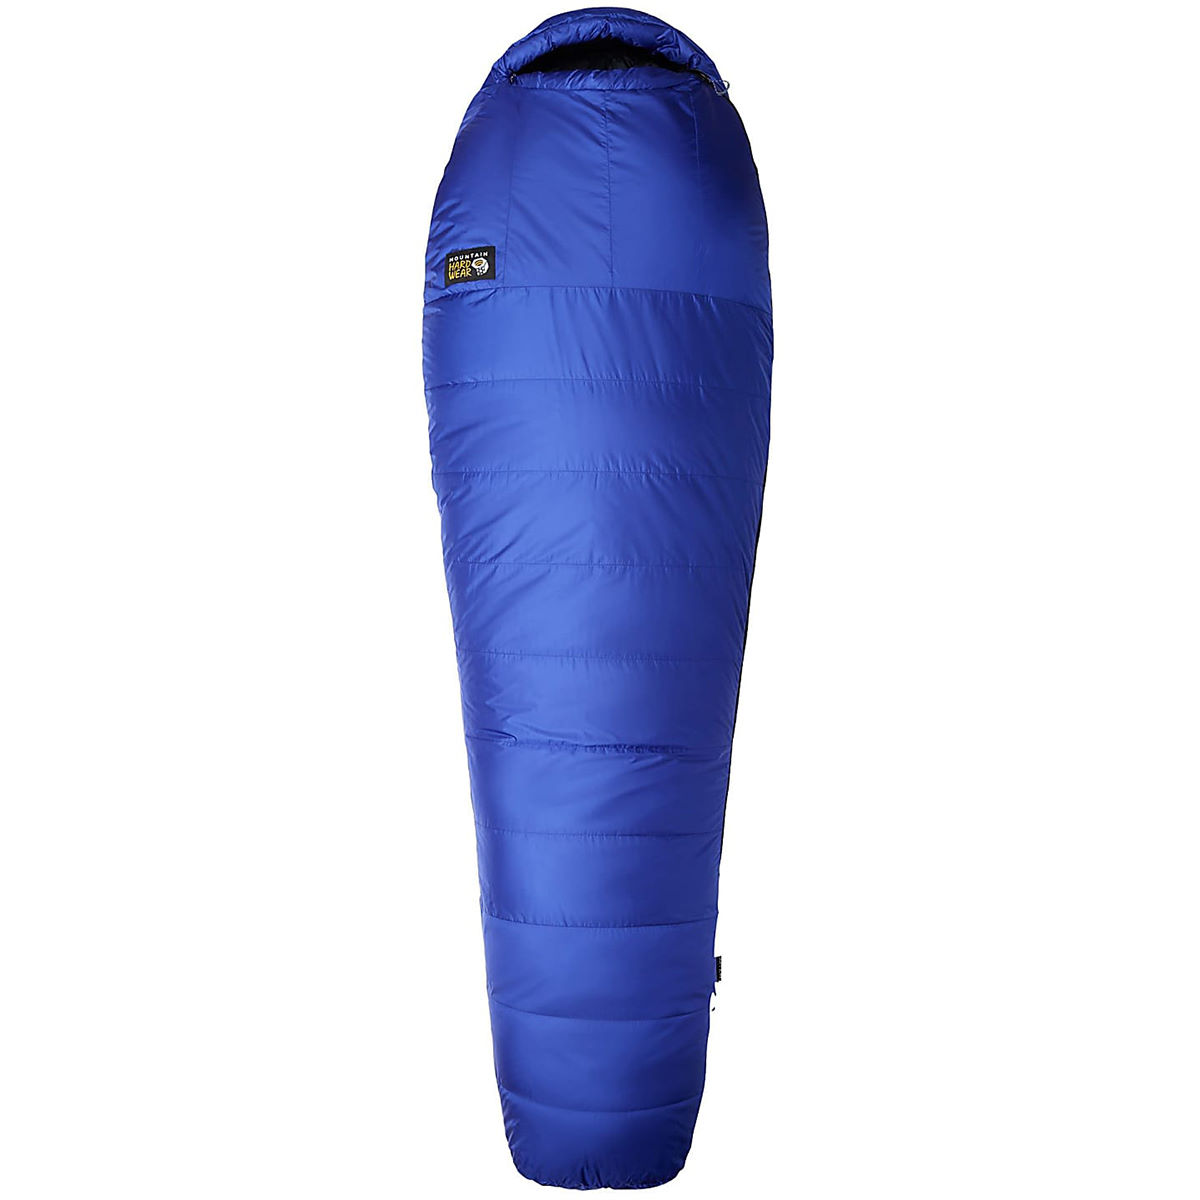 Mountain Hardwear Mountain Hardwear Rook™ 30F/-1C Reg Sleeping Bag   Sleeping Bags